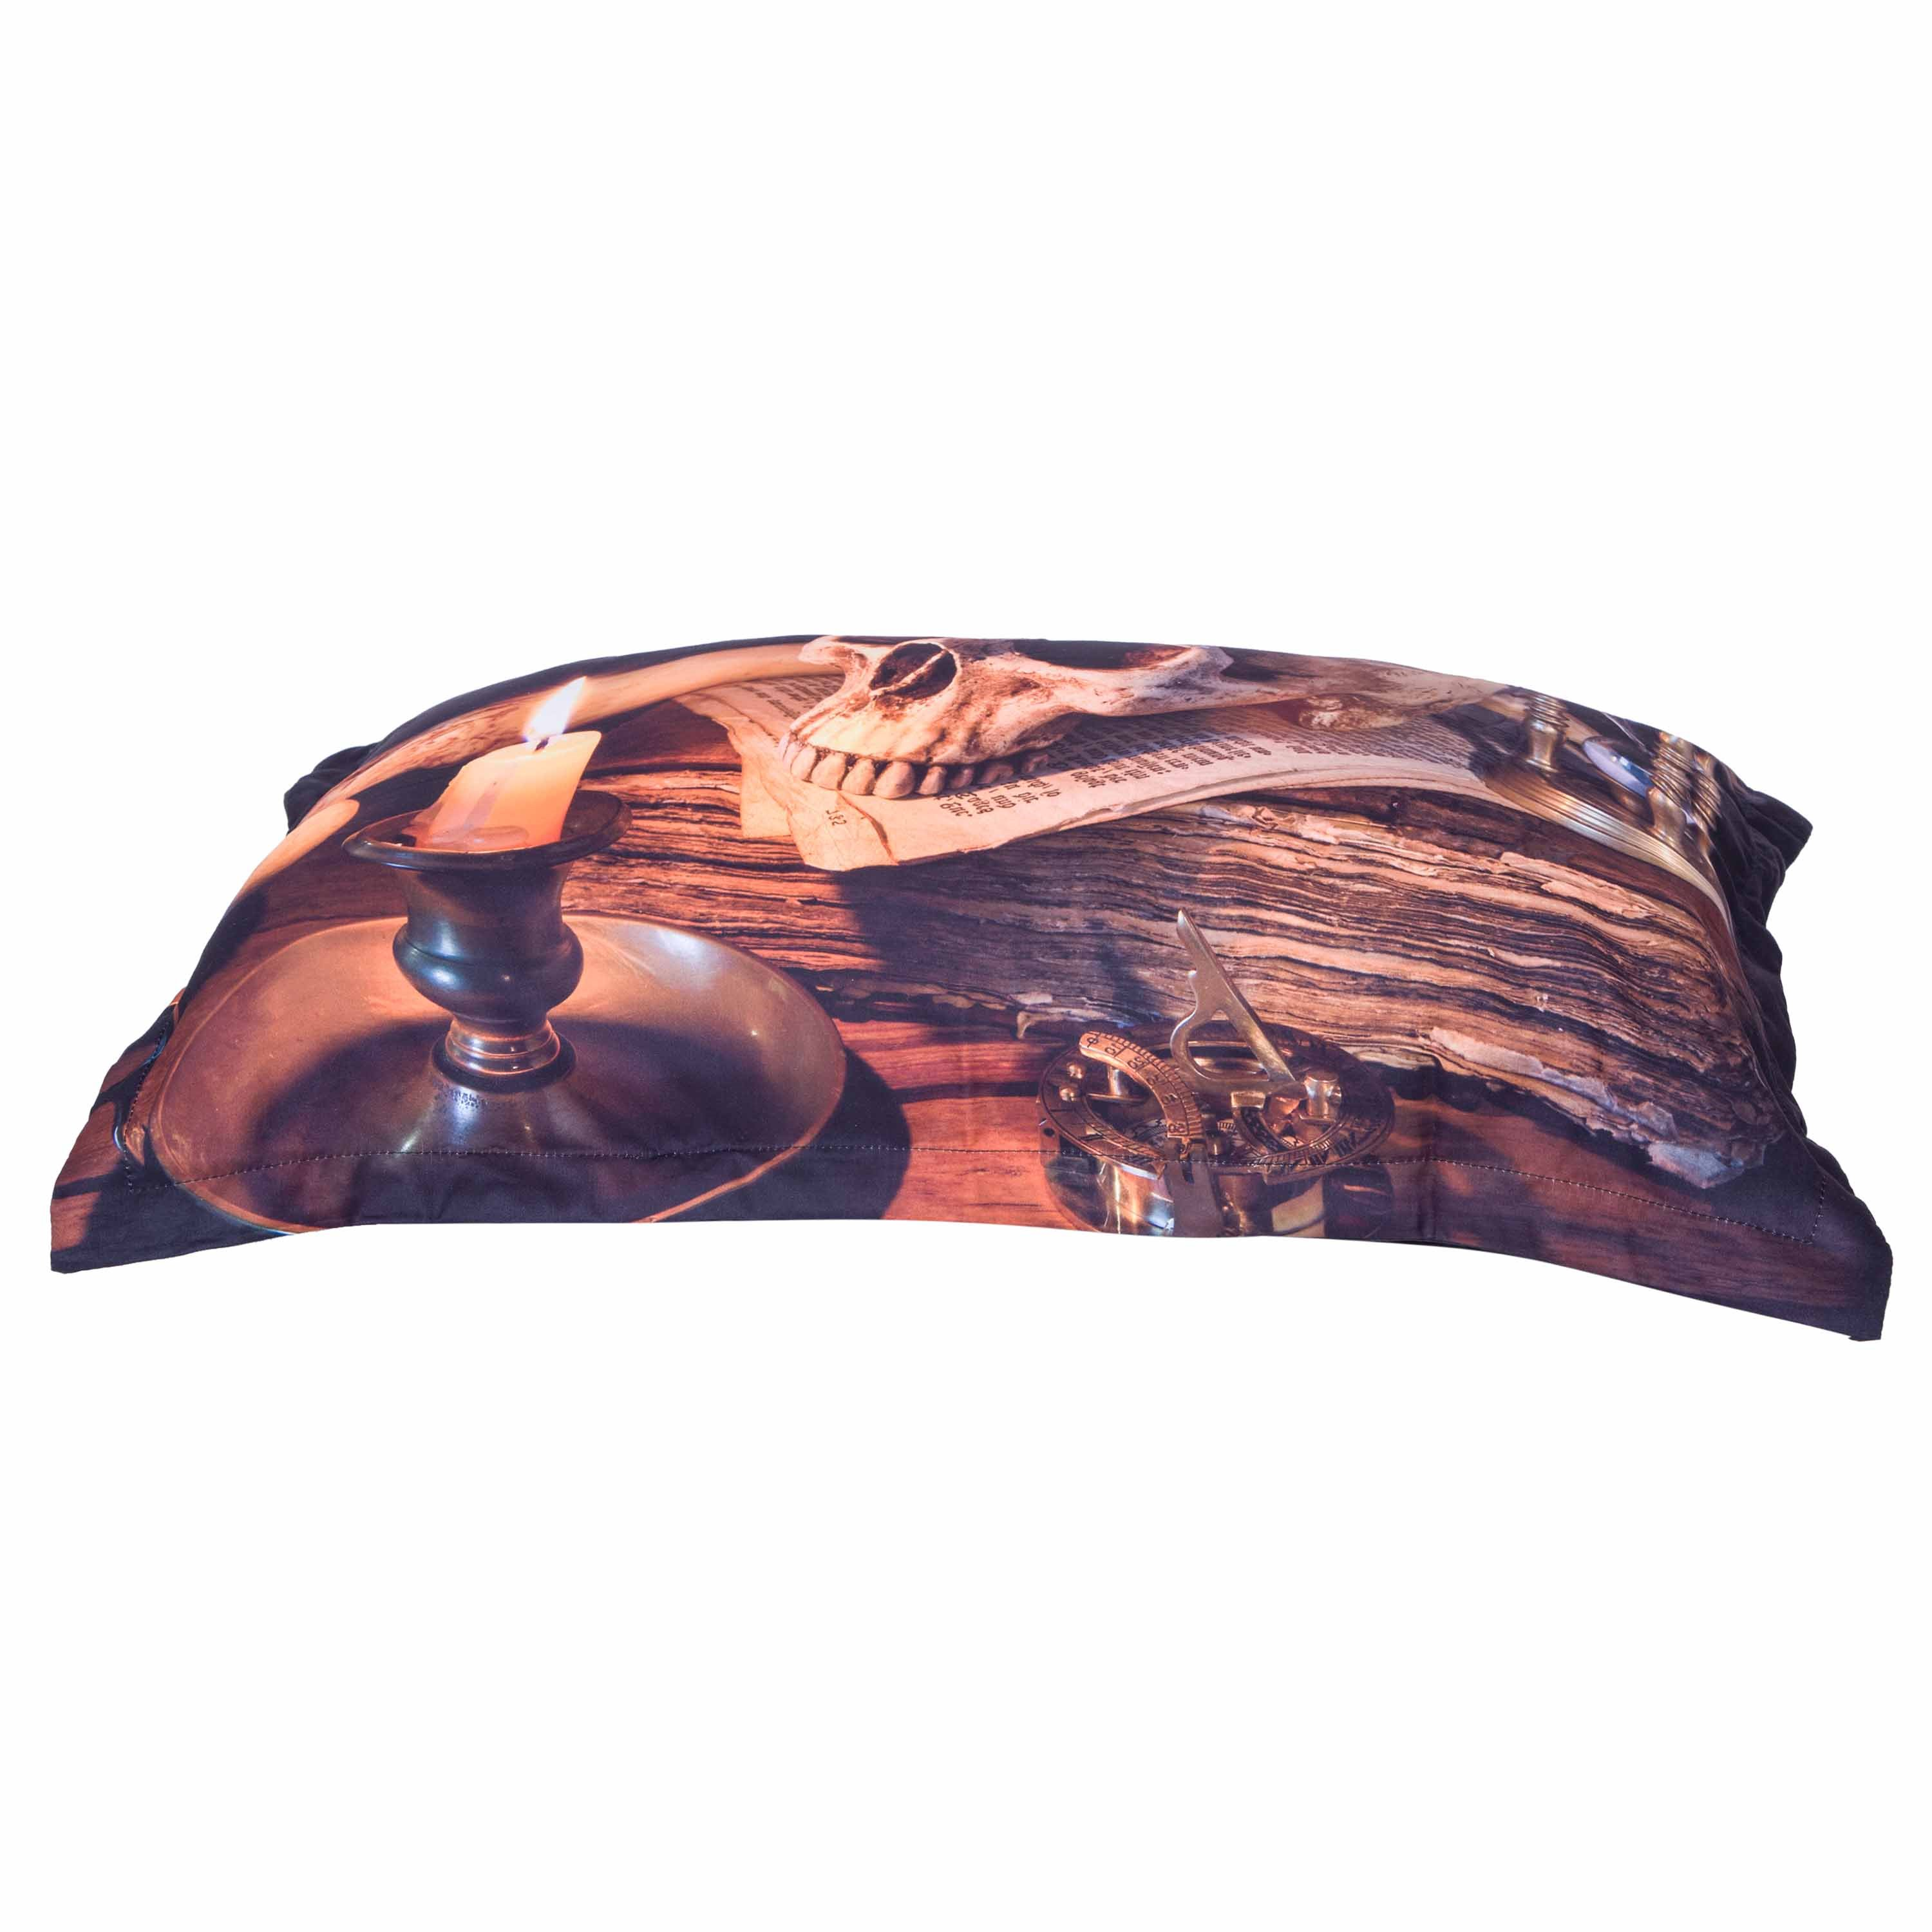 3D Skull and Candle Printed 4-Piece Halloween Bedding Sets/Duvet Covers